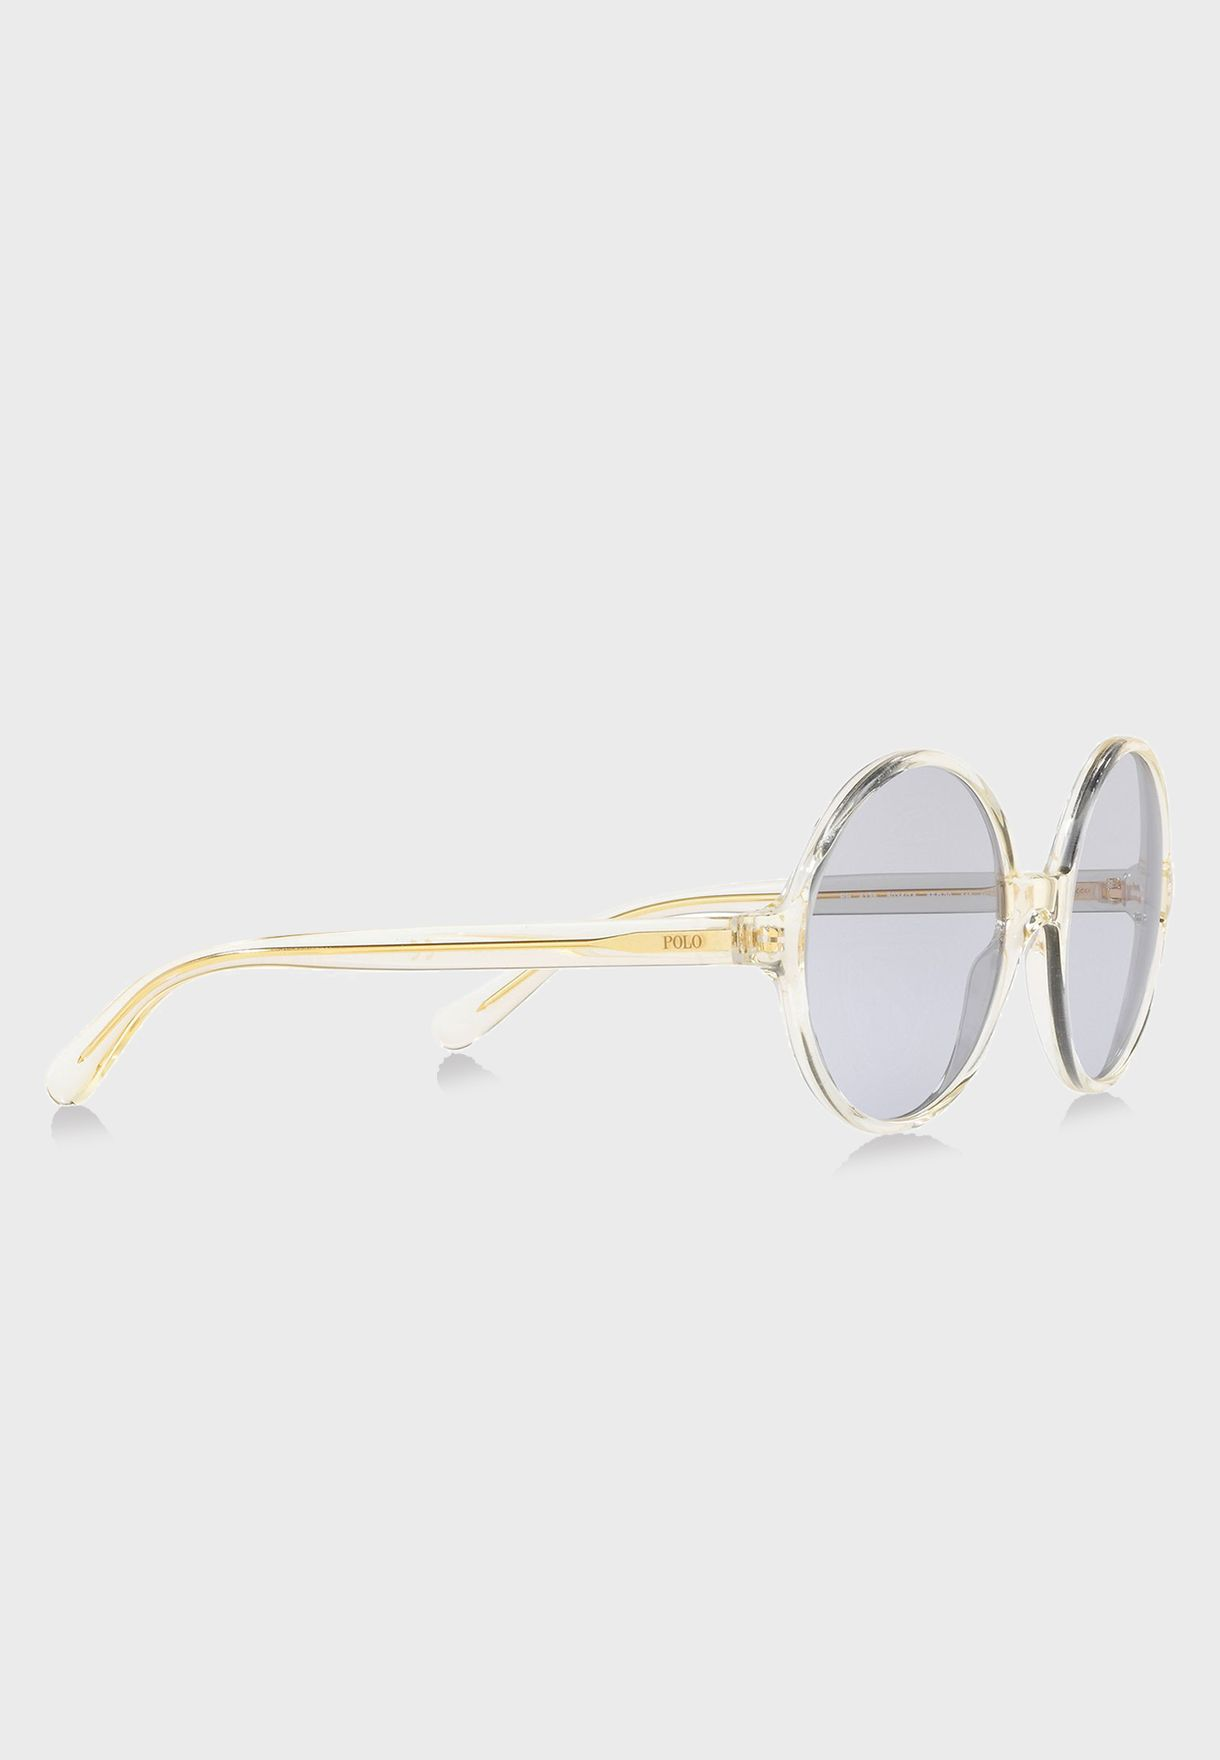 748000abce1 Shop Polo Ralph Lauren clear Round Sunglasses 8.05E+12 for ...